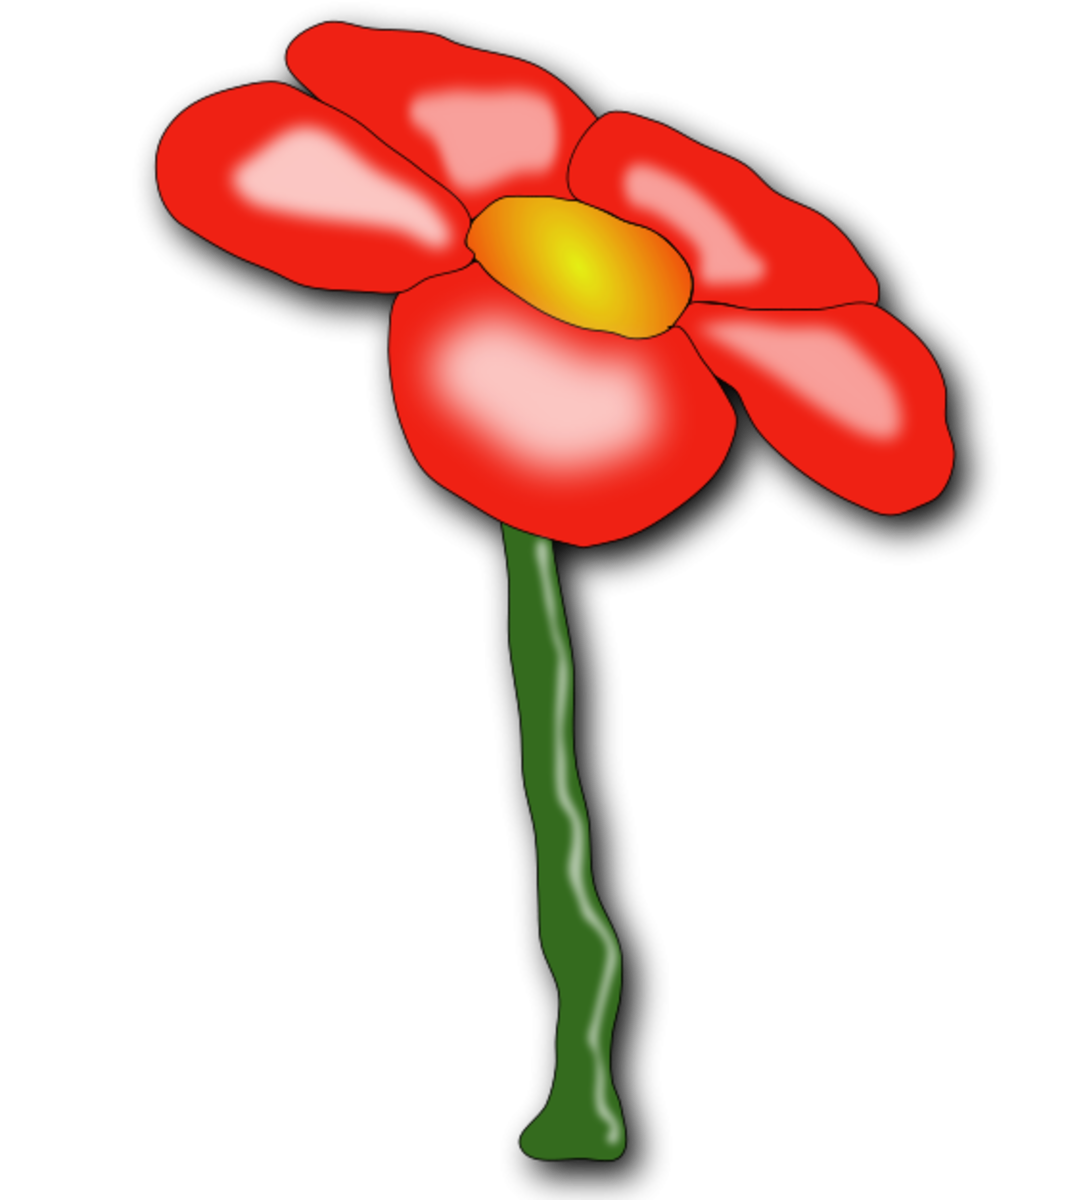 Red Flower with Five Petals